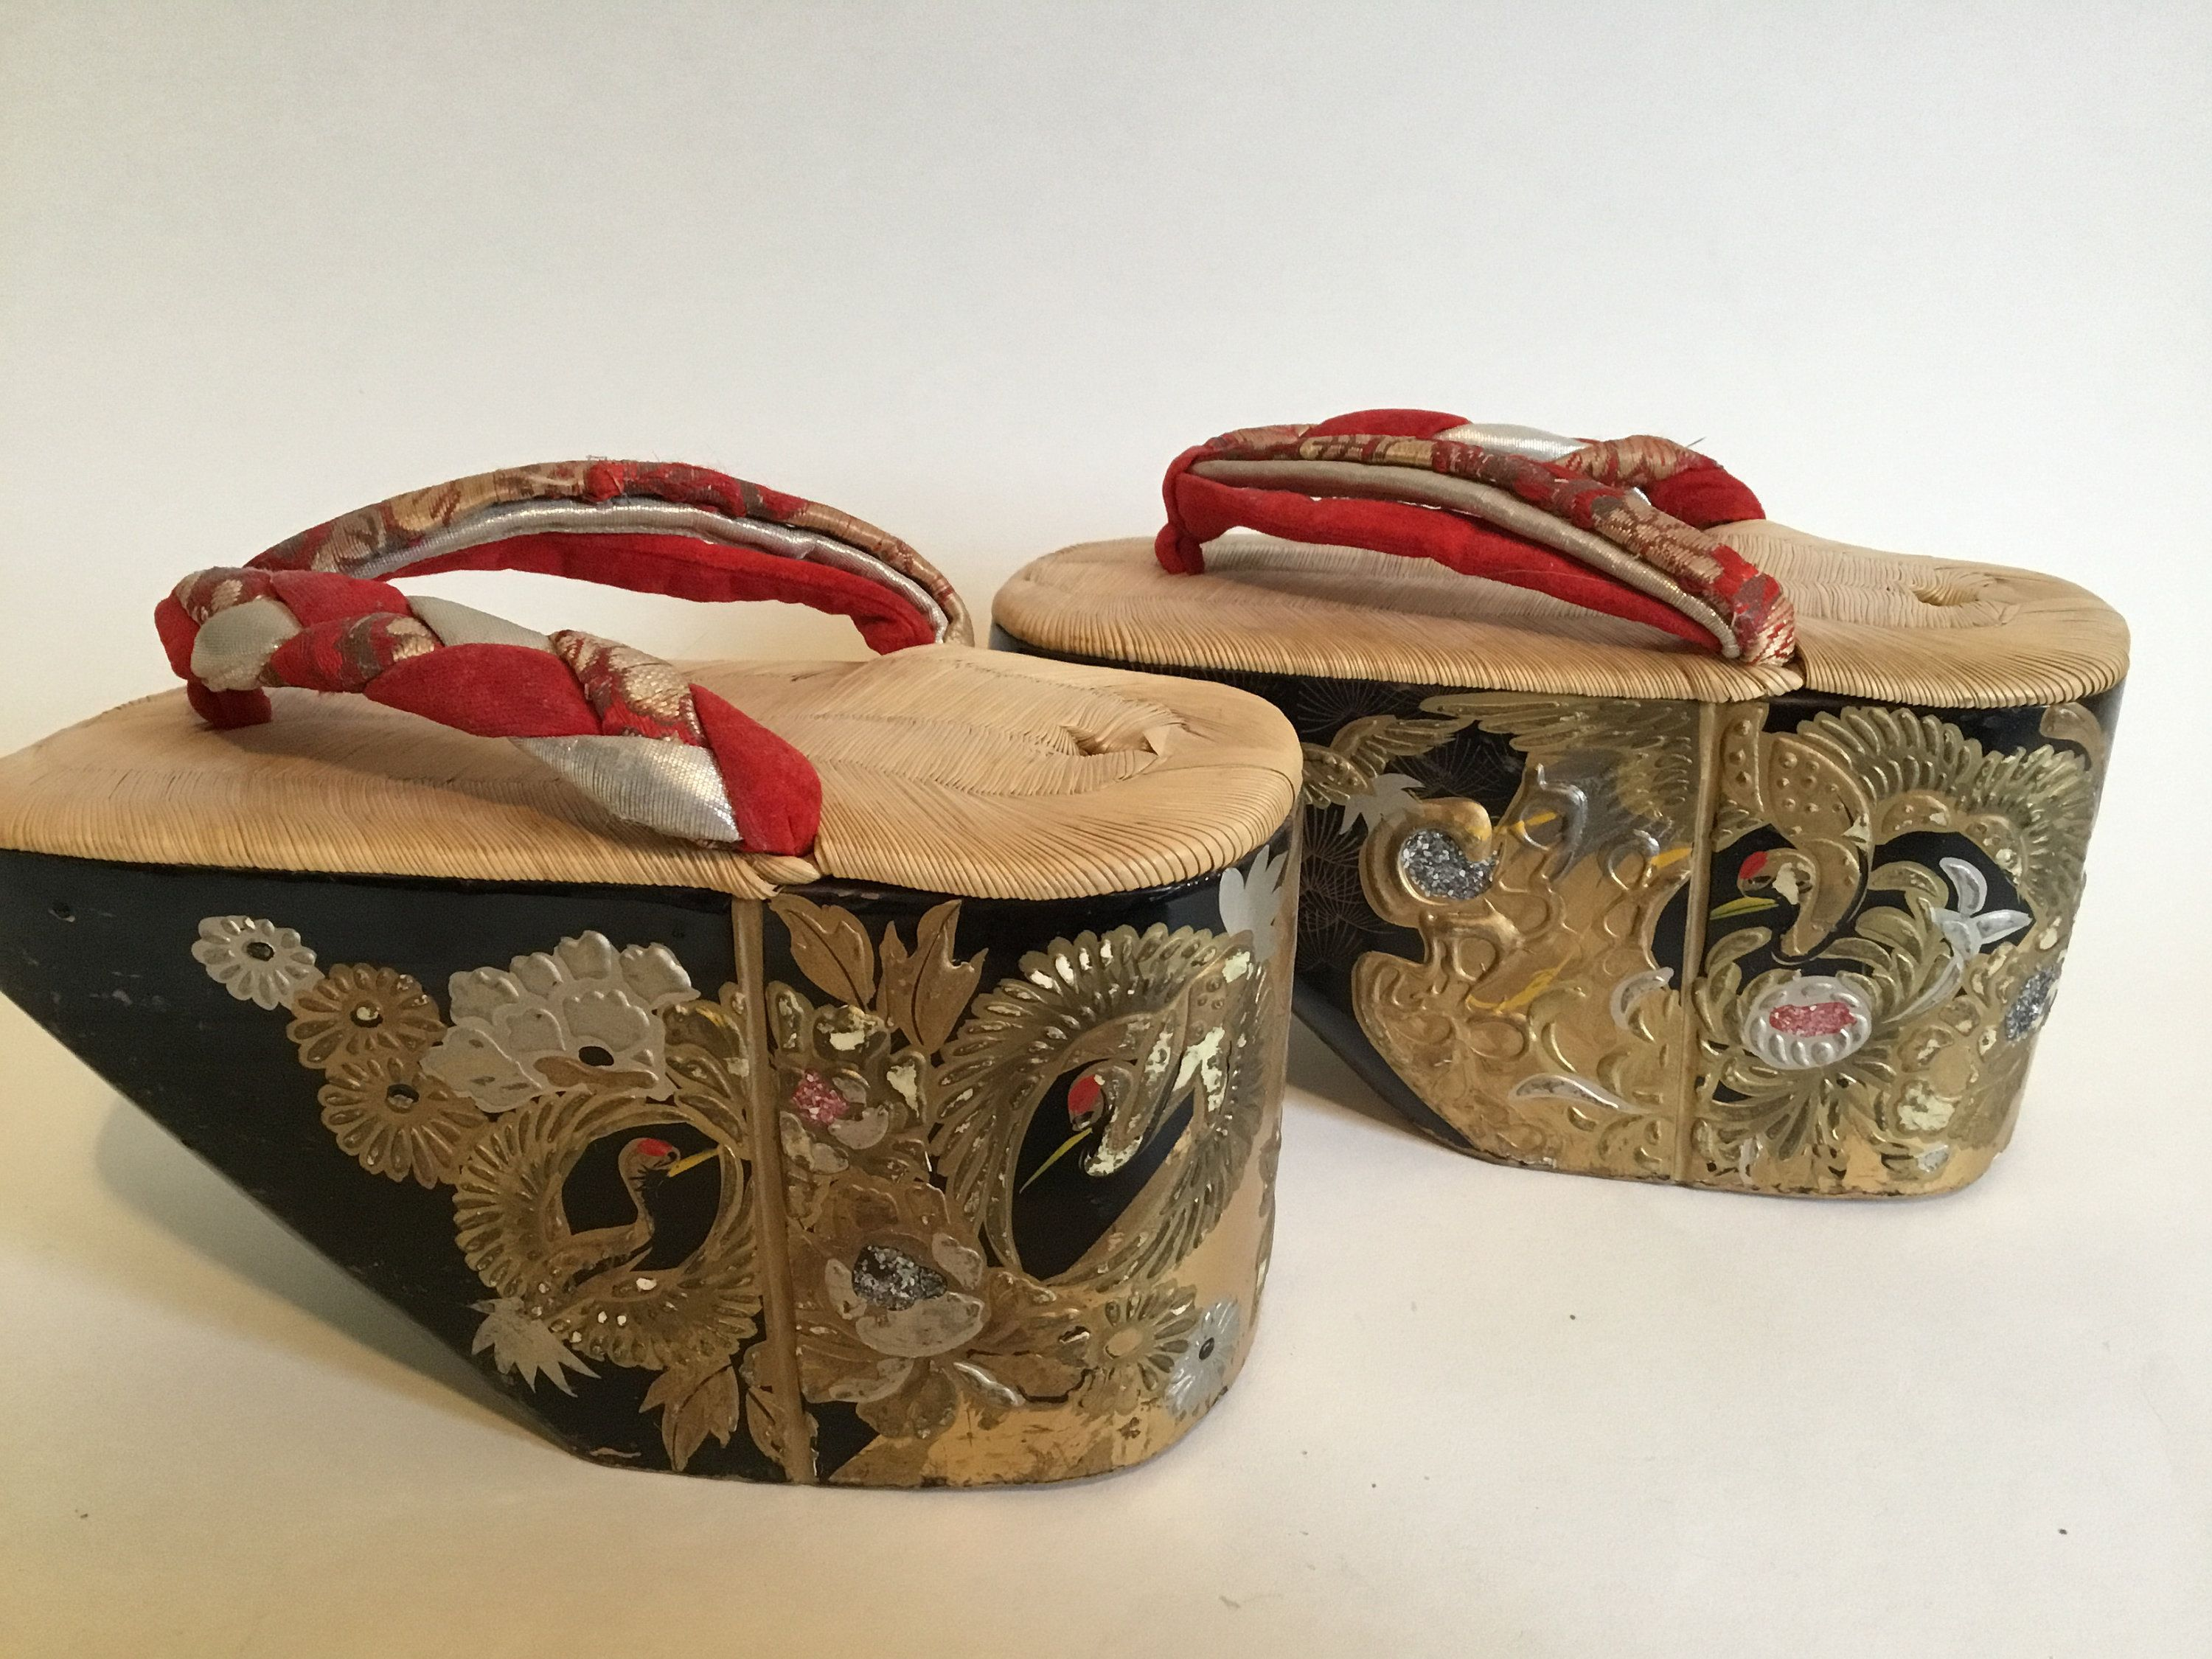 Vintage Pokkuri Japanese Maiko S Wooden Lacquered Shoes By Thesinkingcanoe On Etsy Wooden Shoes Vintage Antiques Vintage